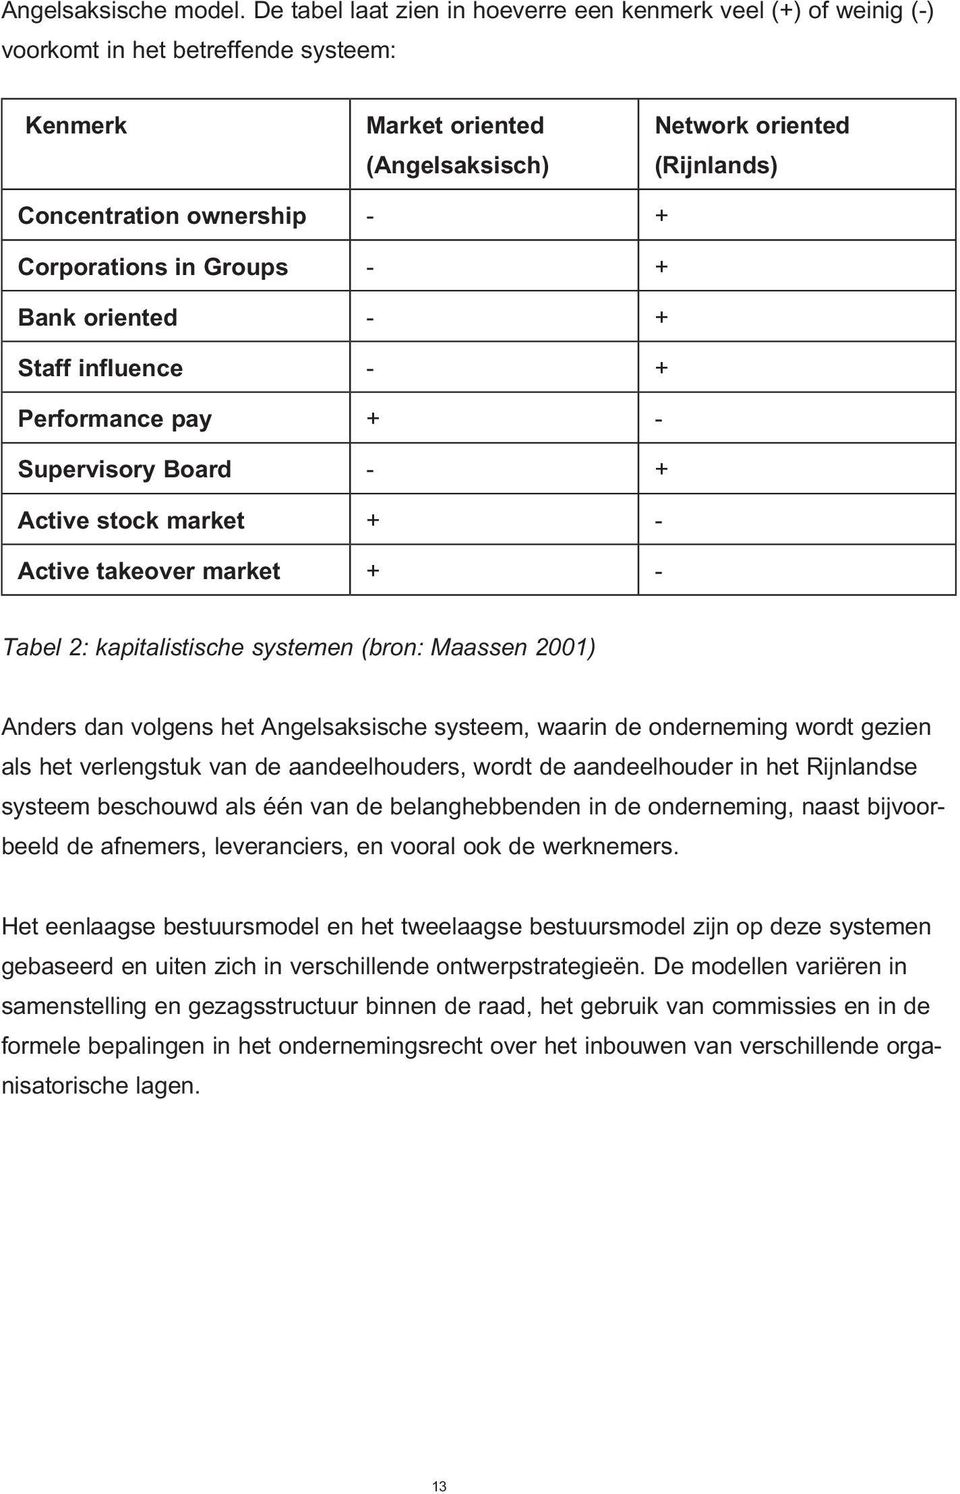 Corporations in Groups - + Bank oriented - + Staff influence - + Performance pay + - Supervisory Board - + Active stock market + - Active takeover market + - Tabel 2: kapitalistische systemen (bron: